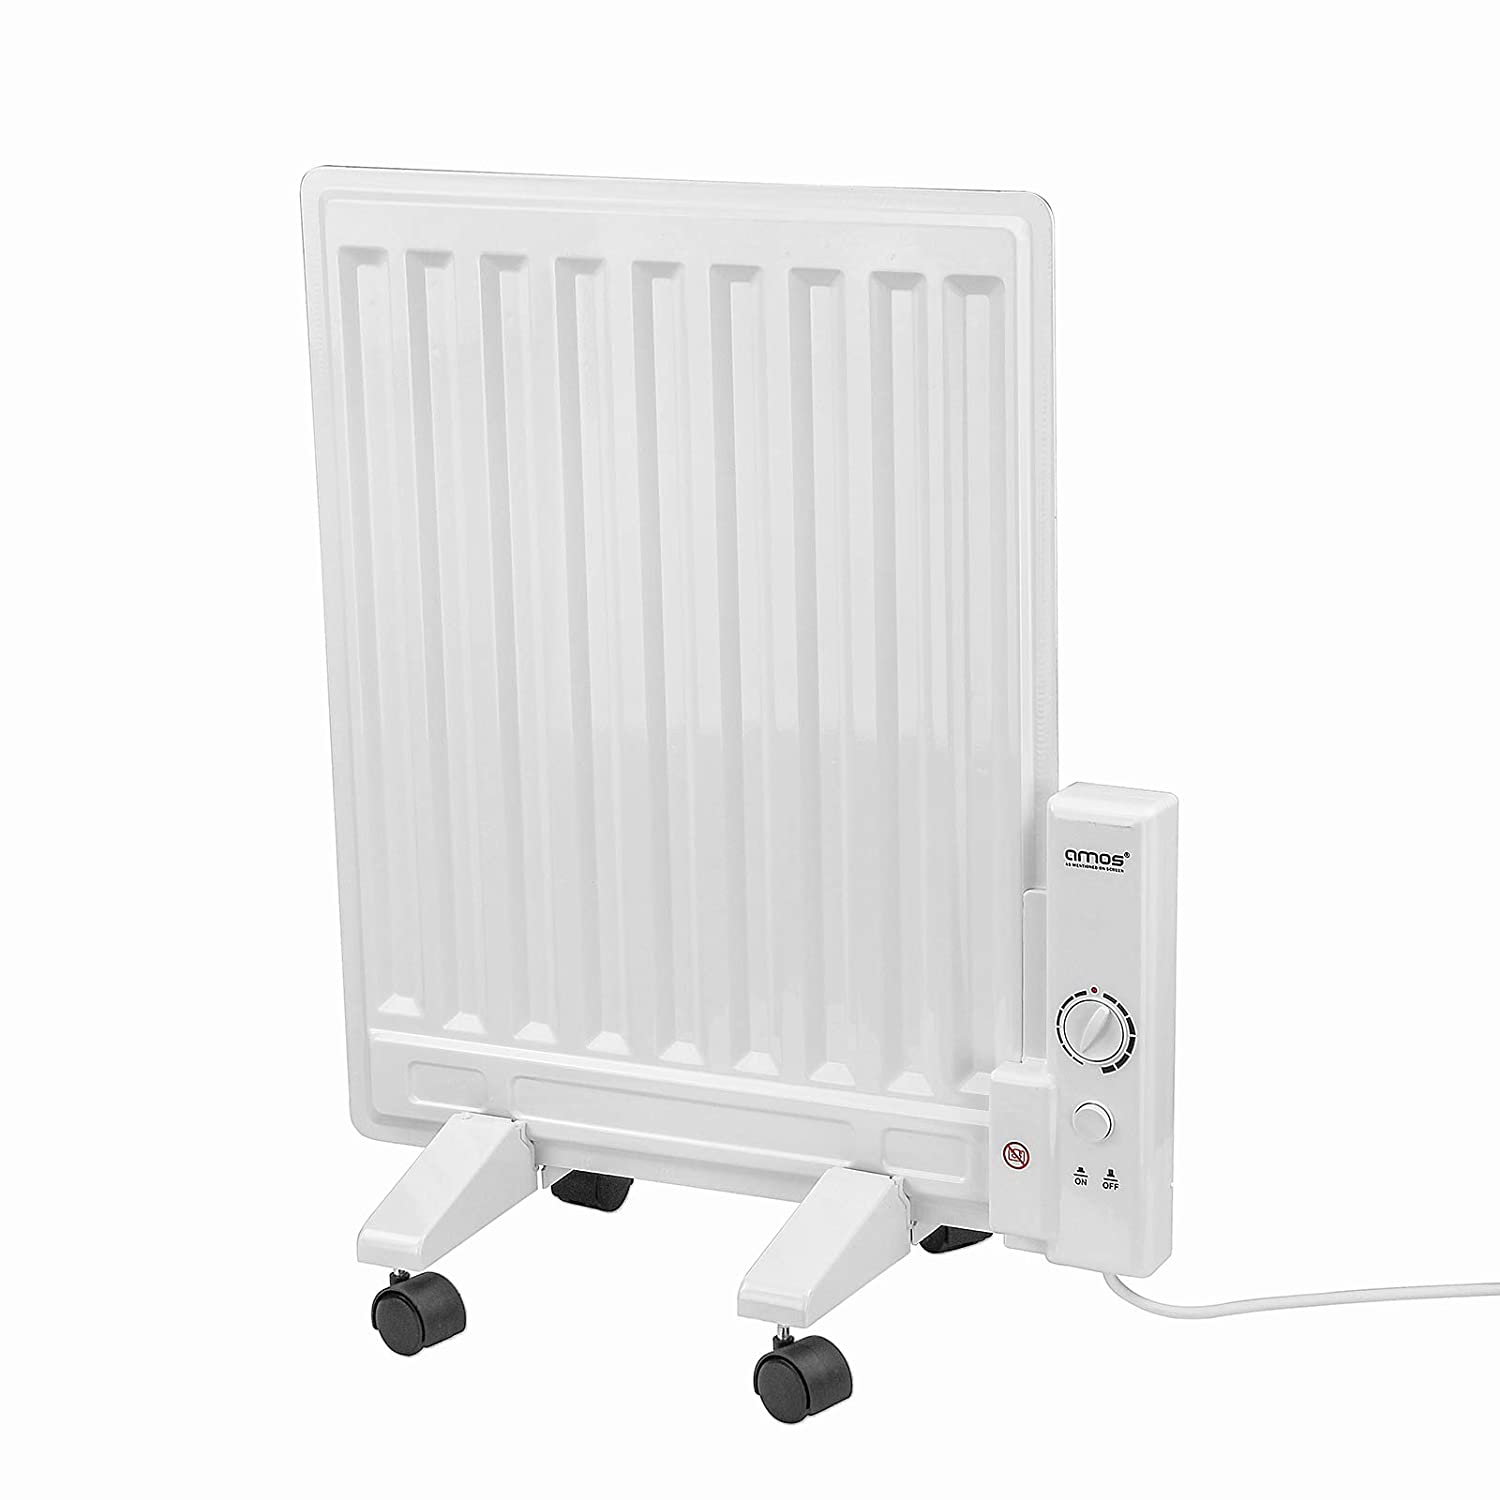 Quality Prem-I-Air 800 W 7 Fin Oil Filled Radiator Ideal for home,Office,Garage